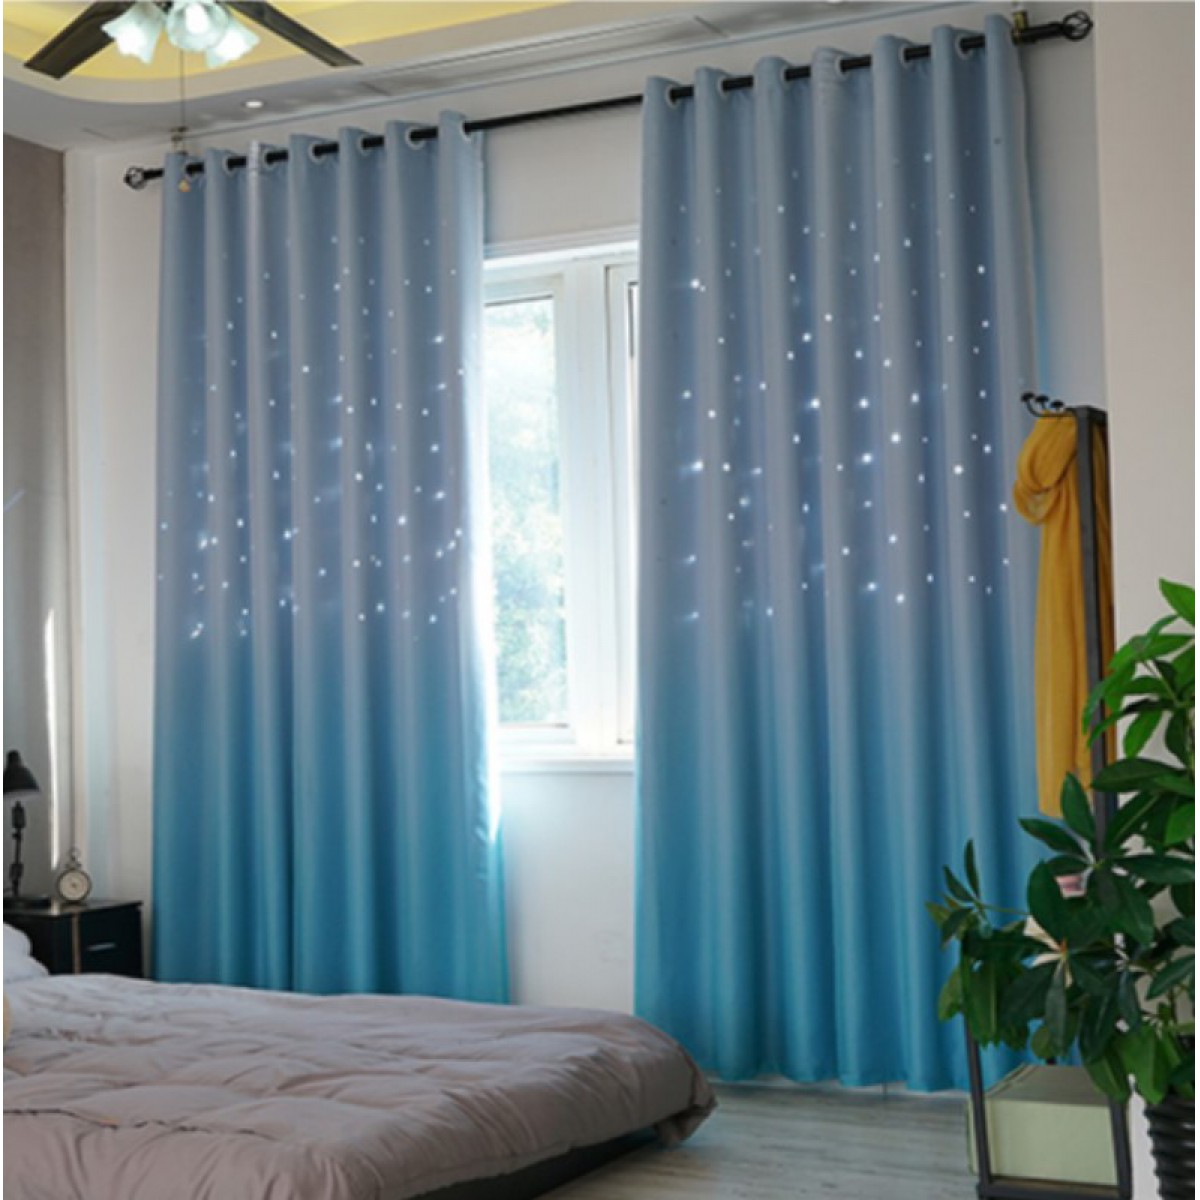 Custom Width and Length Bedroom Grommet Curtains  Mix & Match Star Blackout Curtain and Drapes